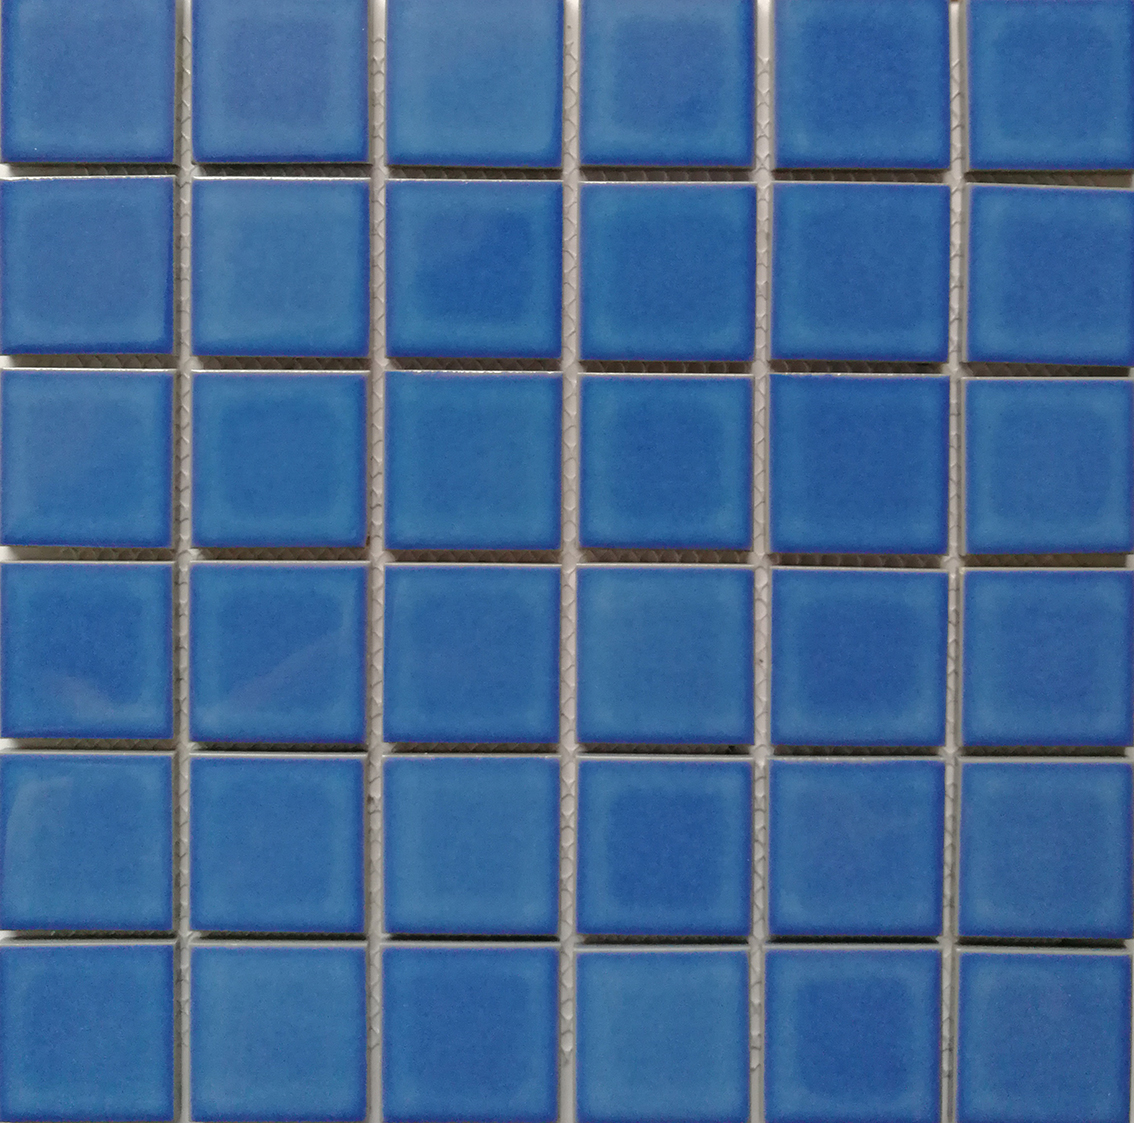 Factory Wholesale Price 2x2 Ceramic Blue Mosaic For Swimming Pool Waterline Accents